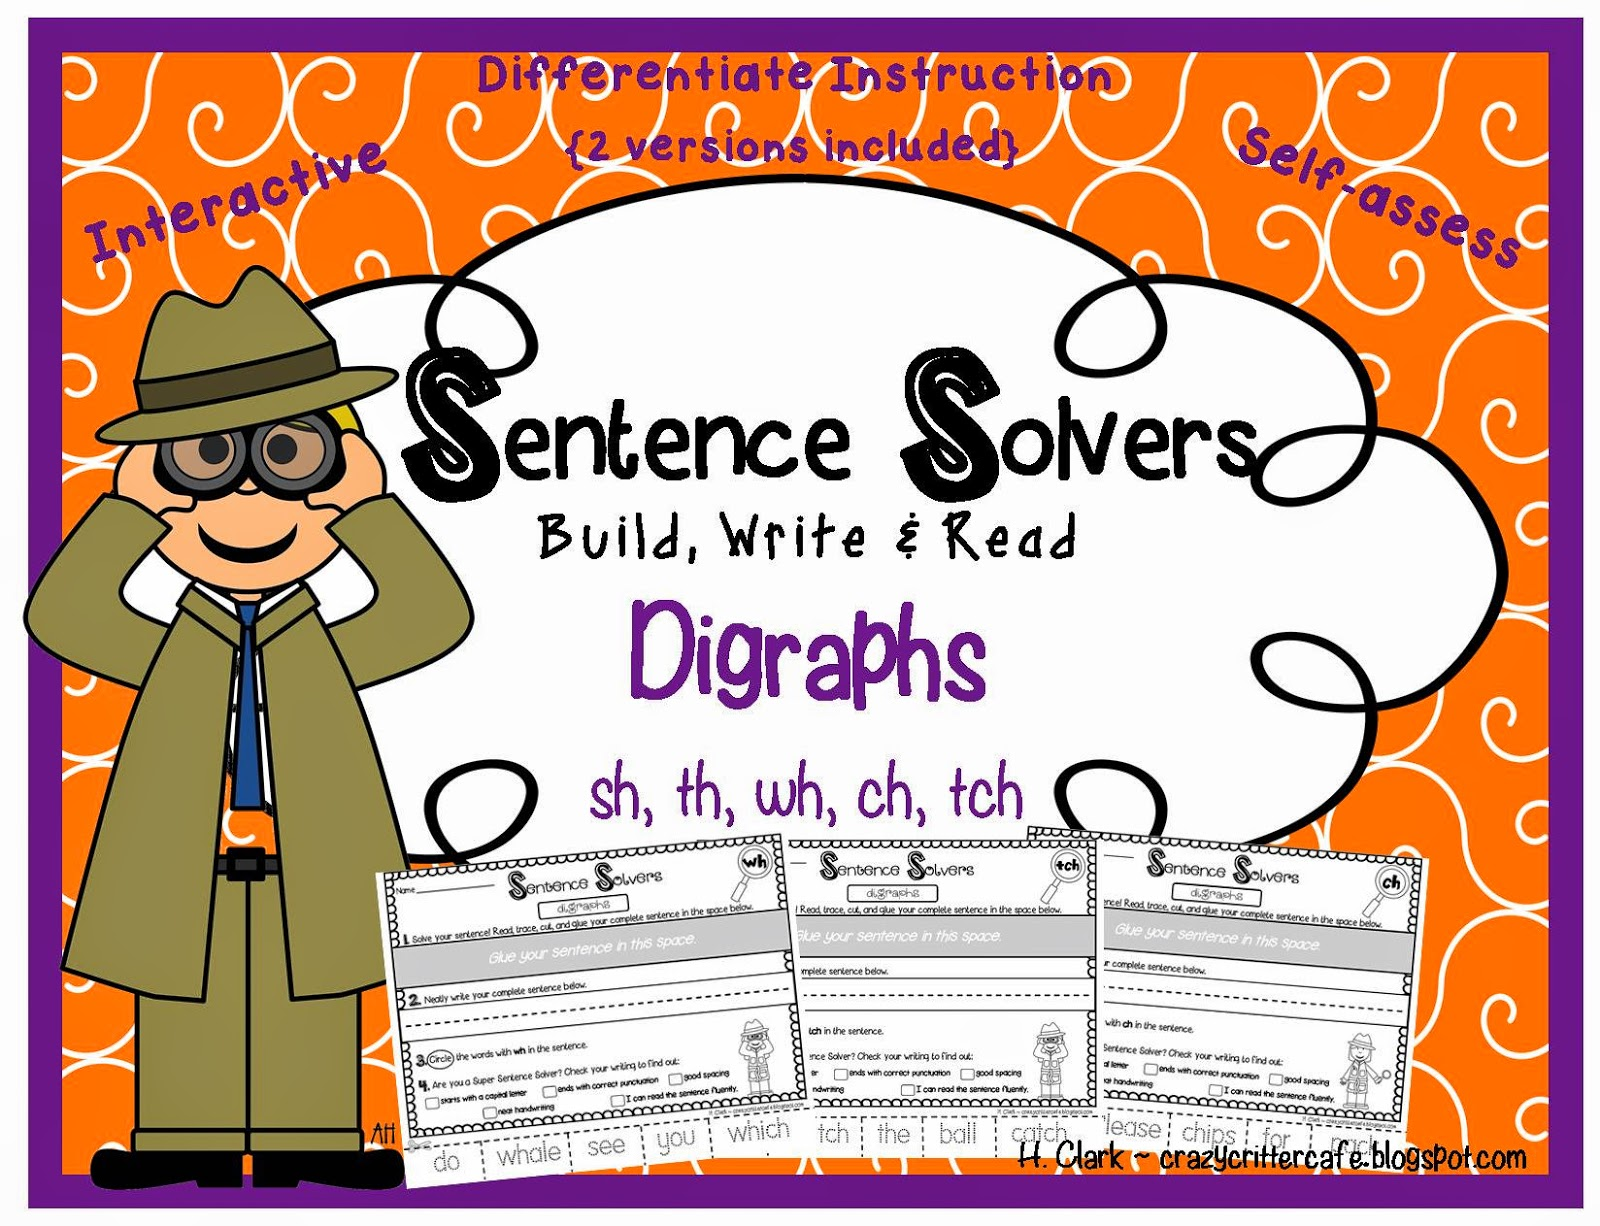 http://www.teacherspayteachers.com/Product/Sentence-Solvers-DIGRAPHS-Interactive-Sentence-Building-Activity-1341943